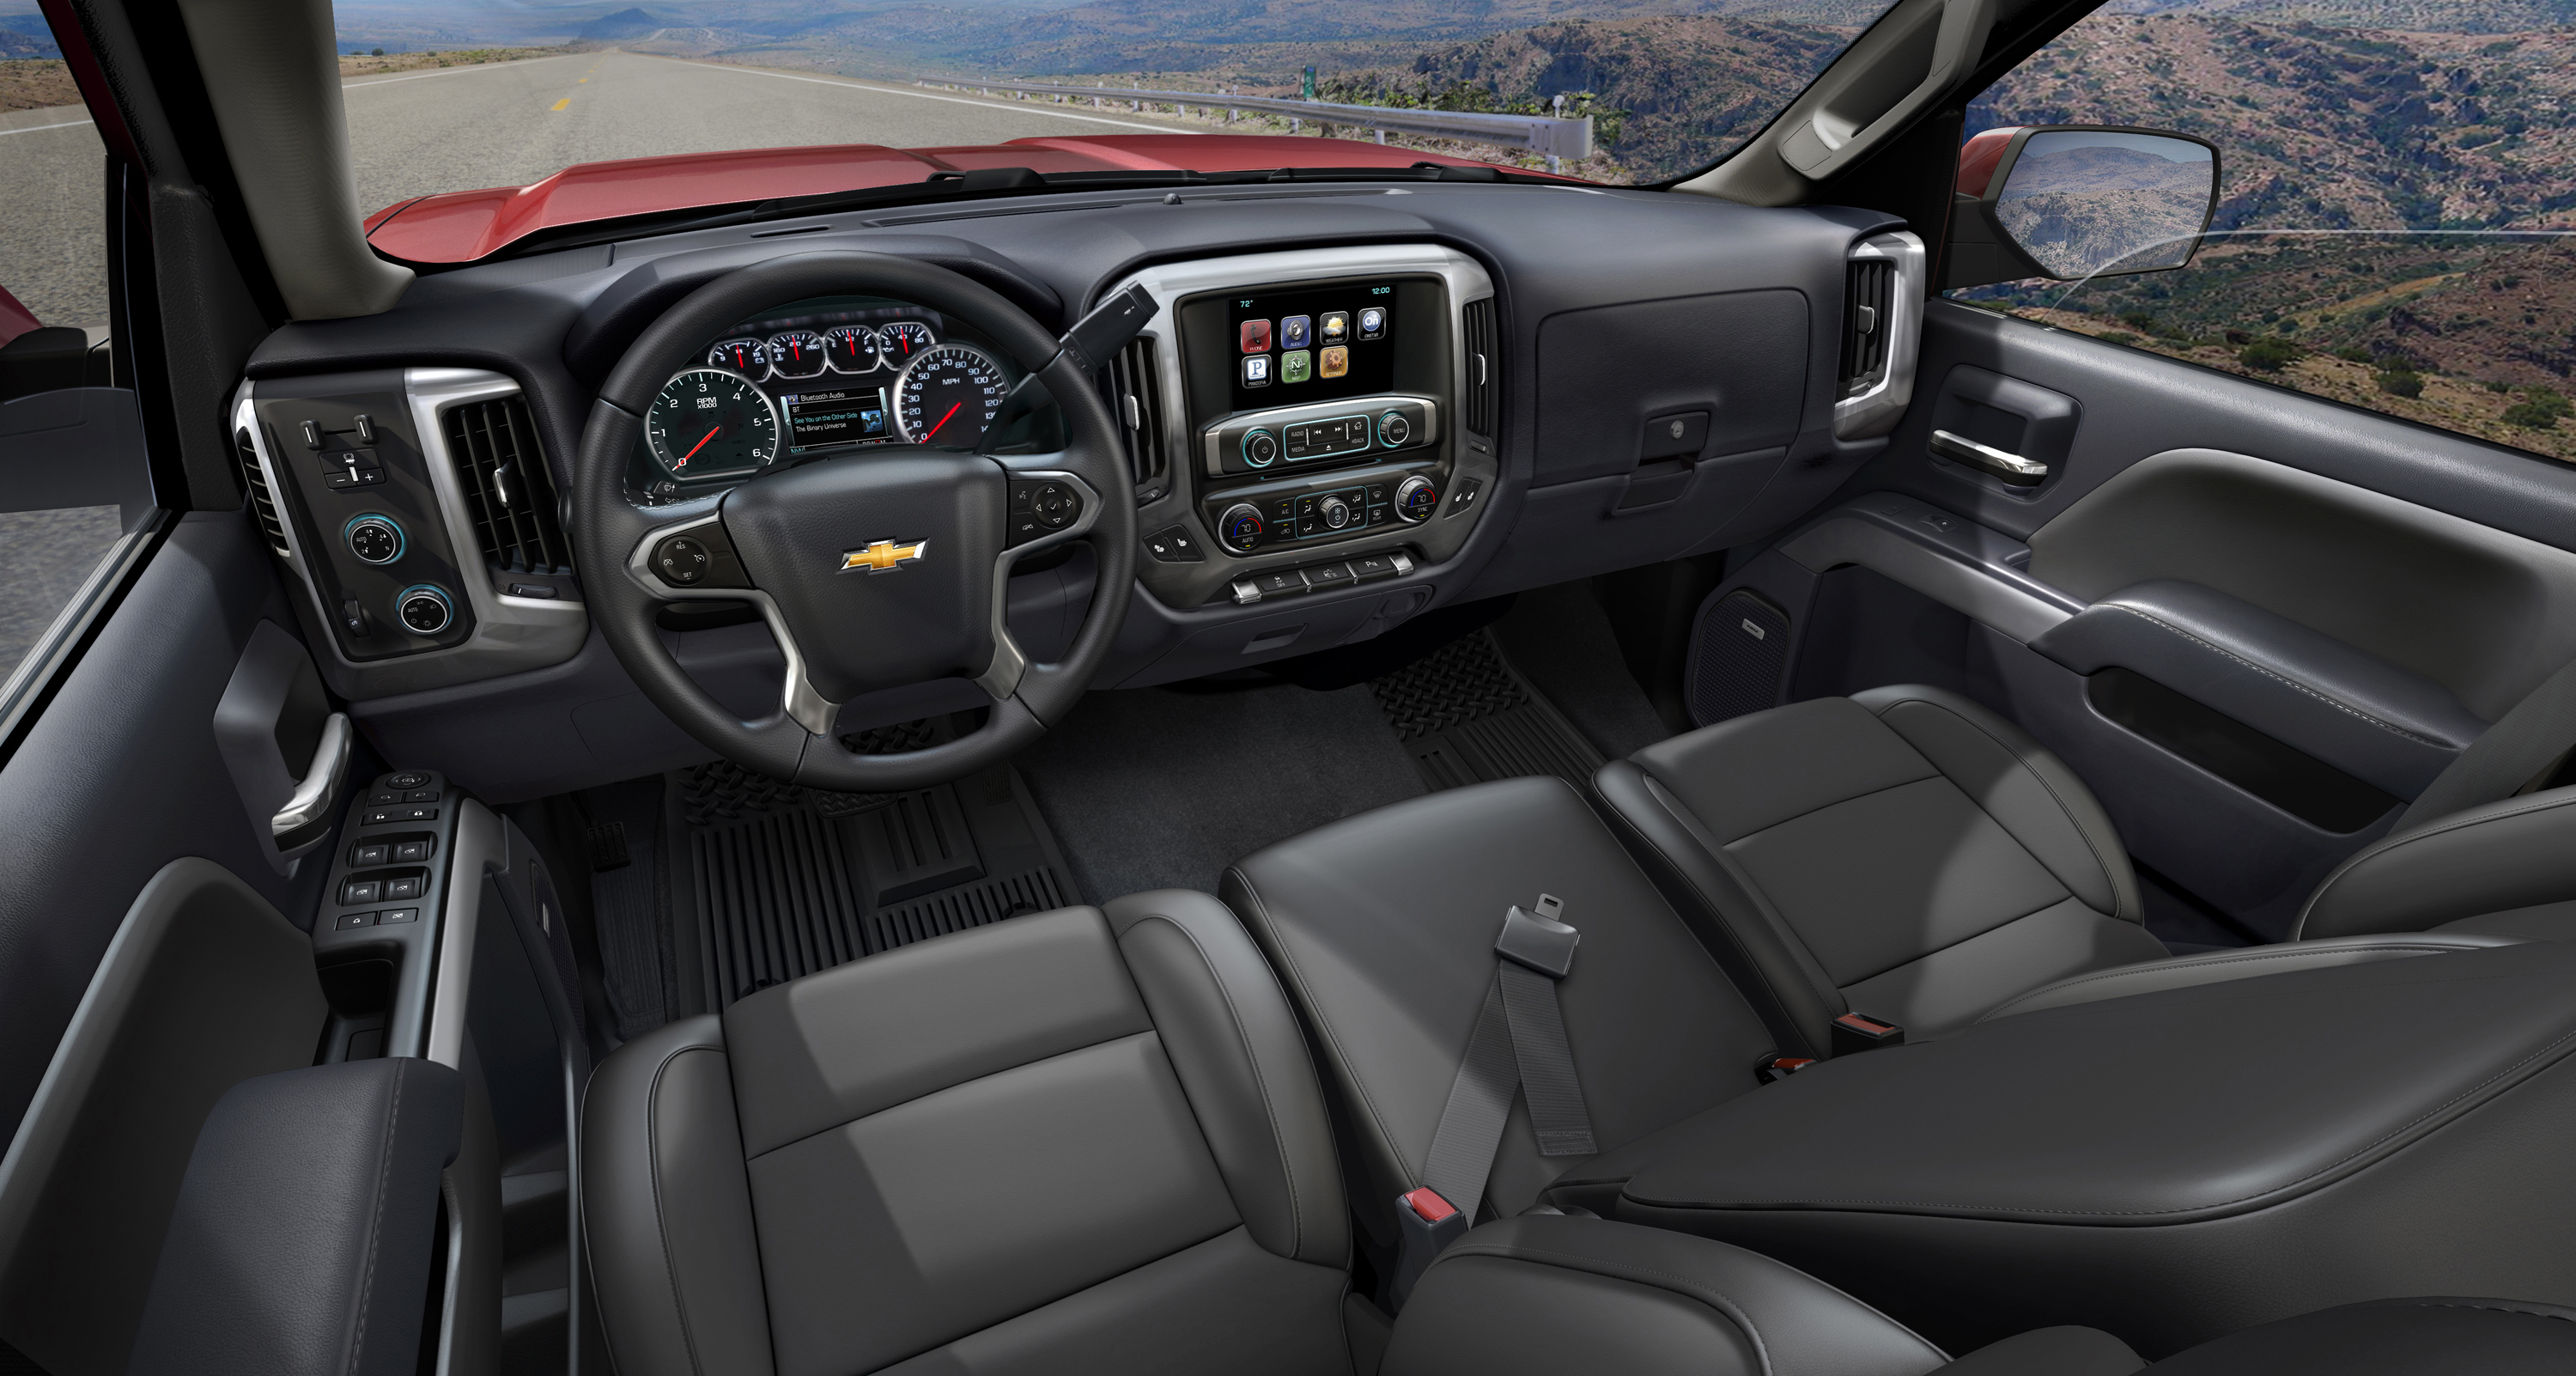 Silverado Cabin Is Capable Comfortable And Connected